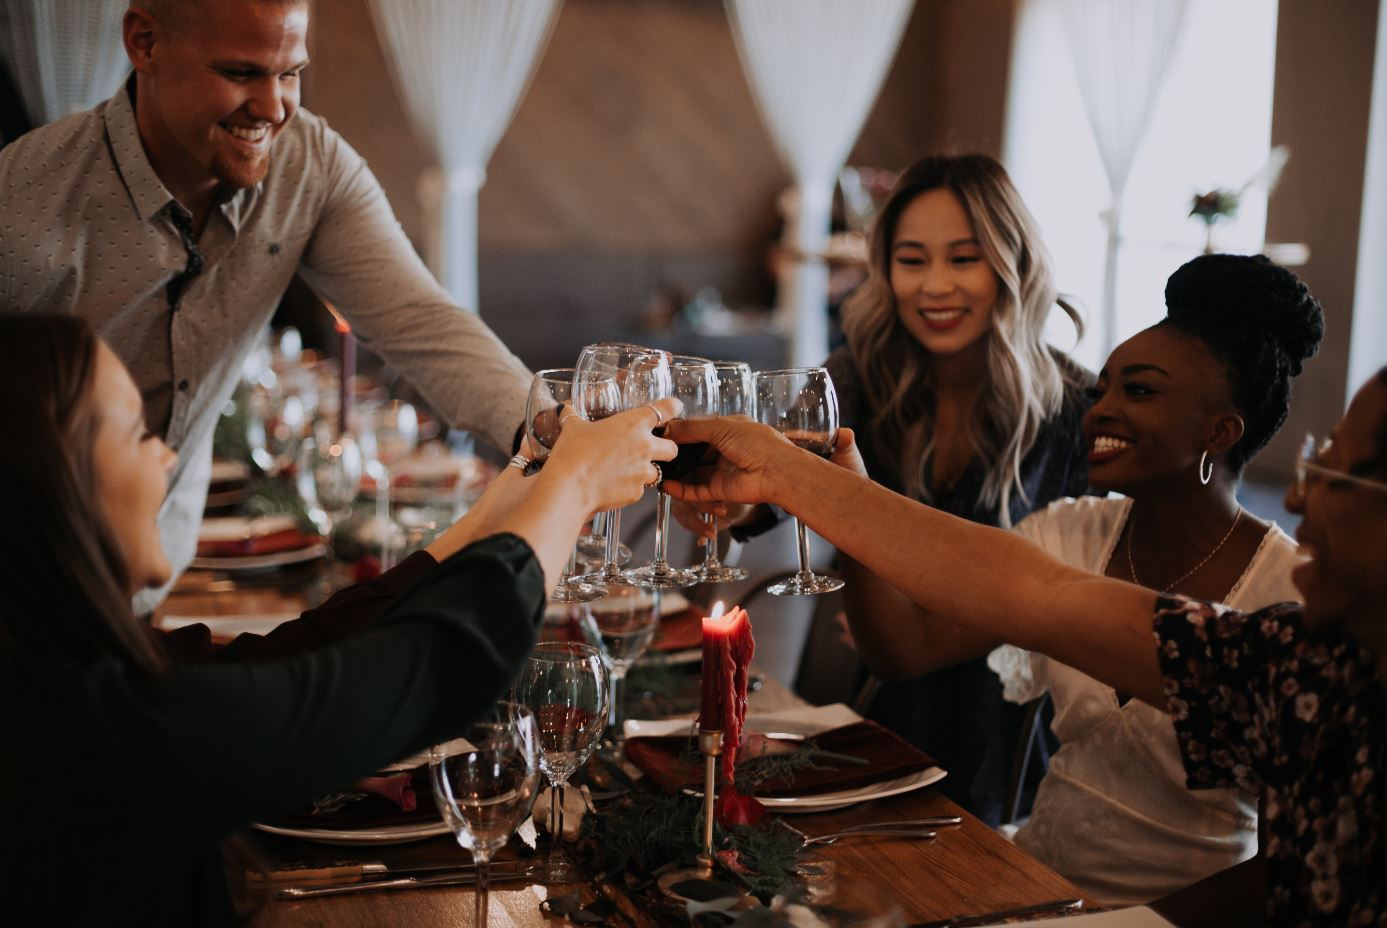 Friends gathered around a holiday table, raising a toast